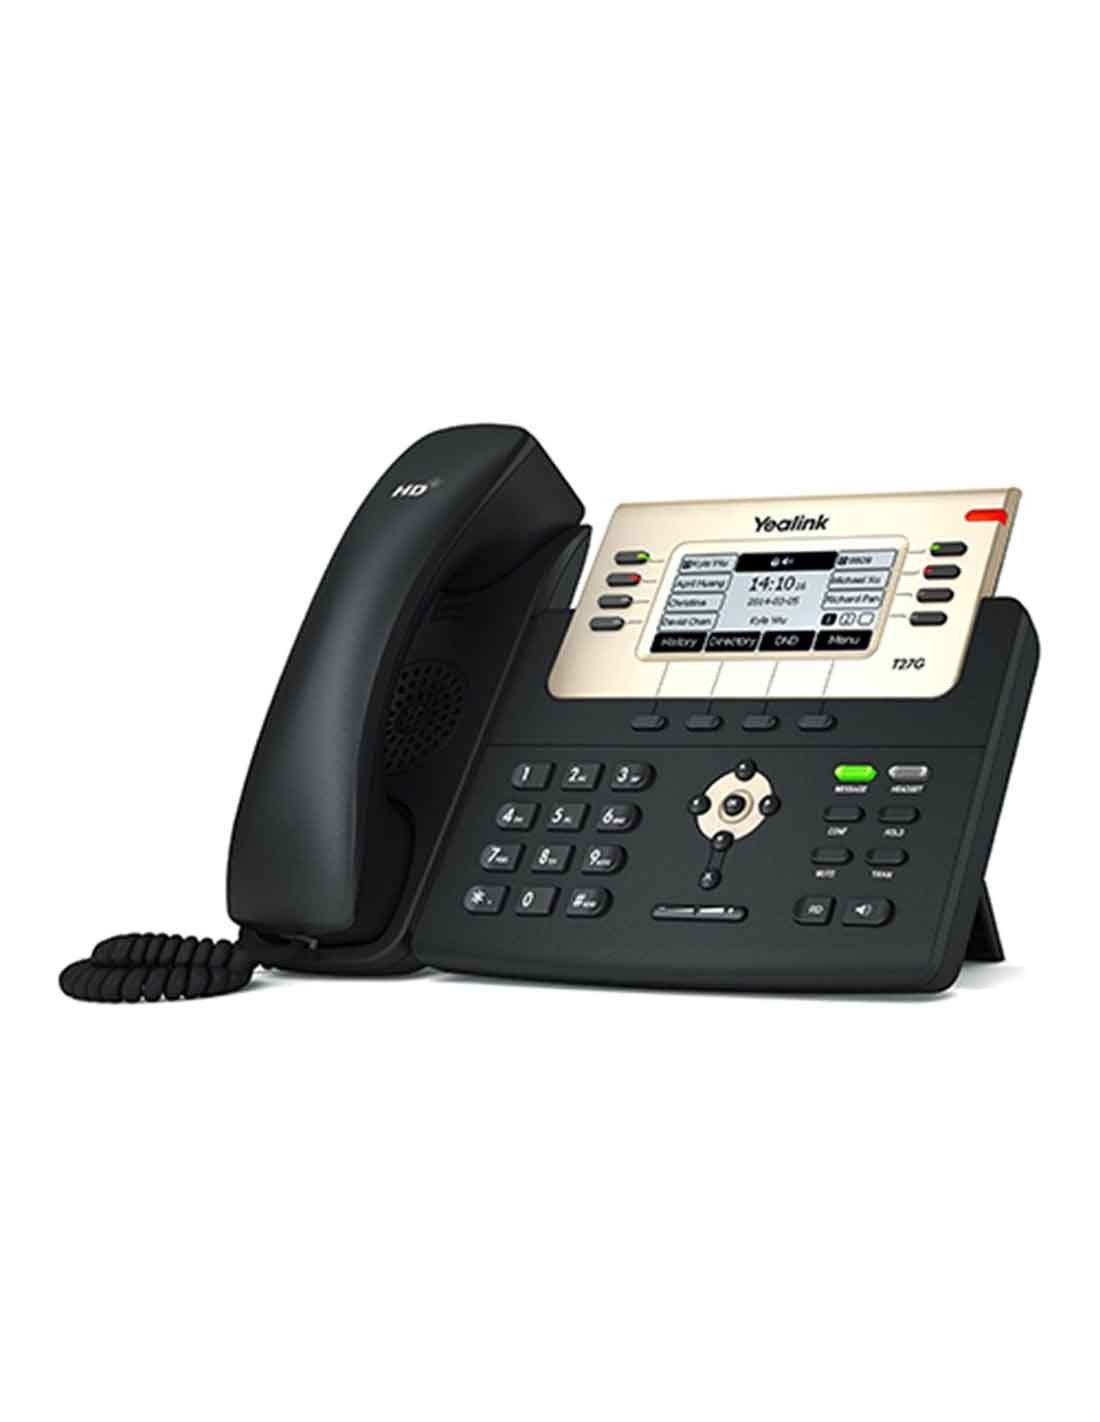 Yealink SIP-T27G IP Phone at a cheap price and free delivery in Dubai